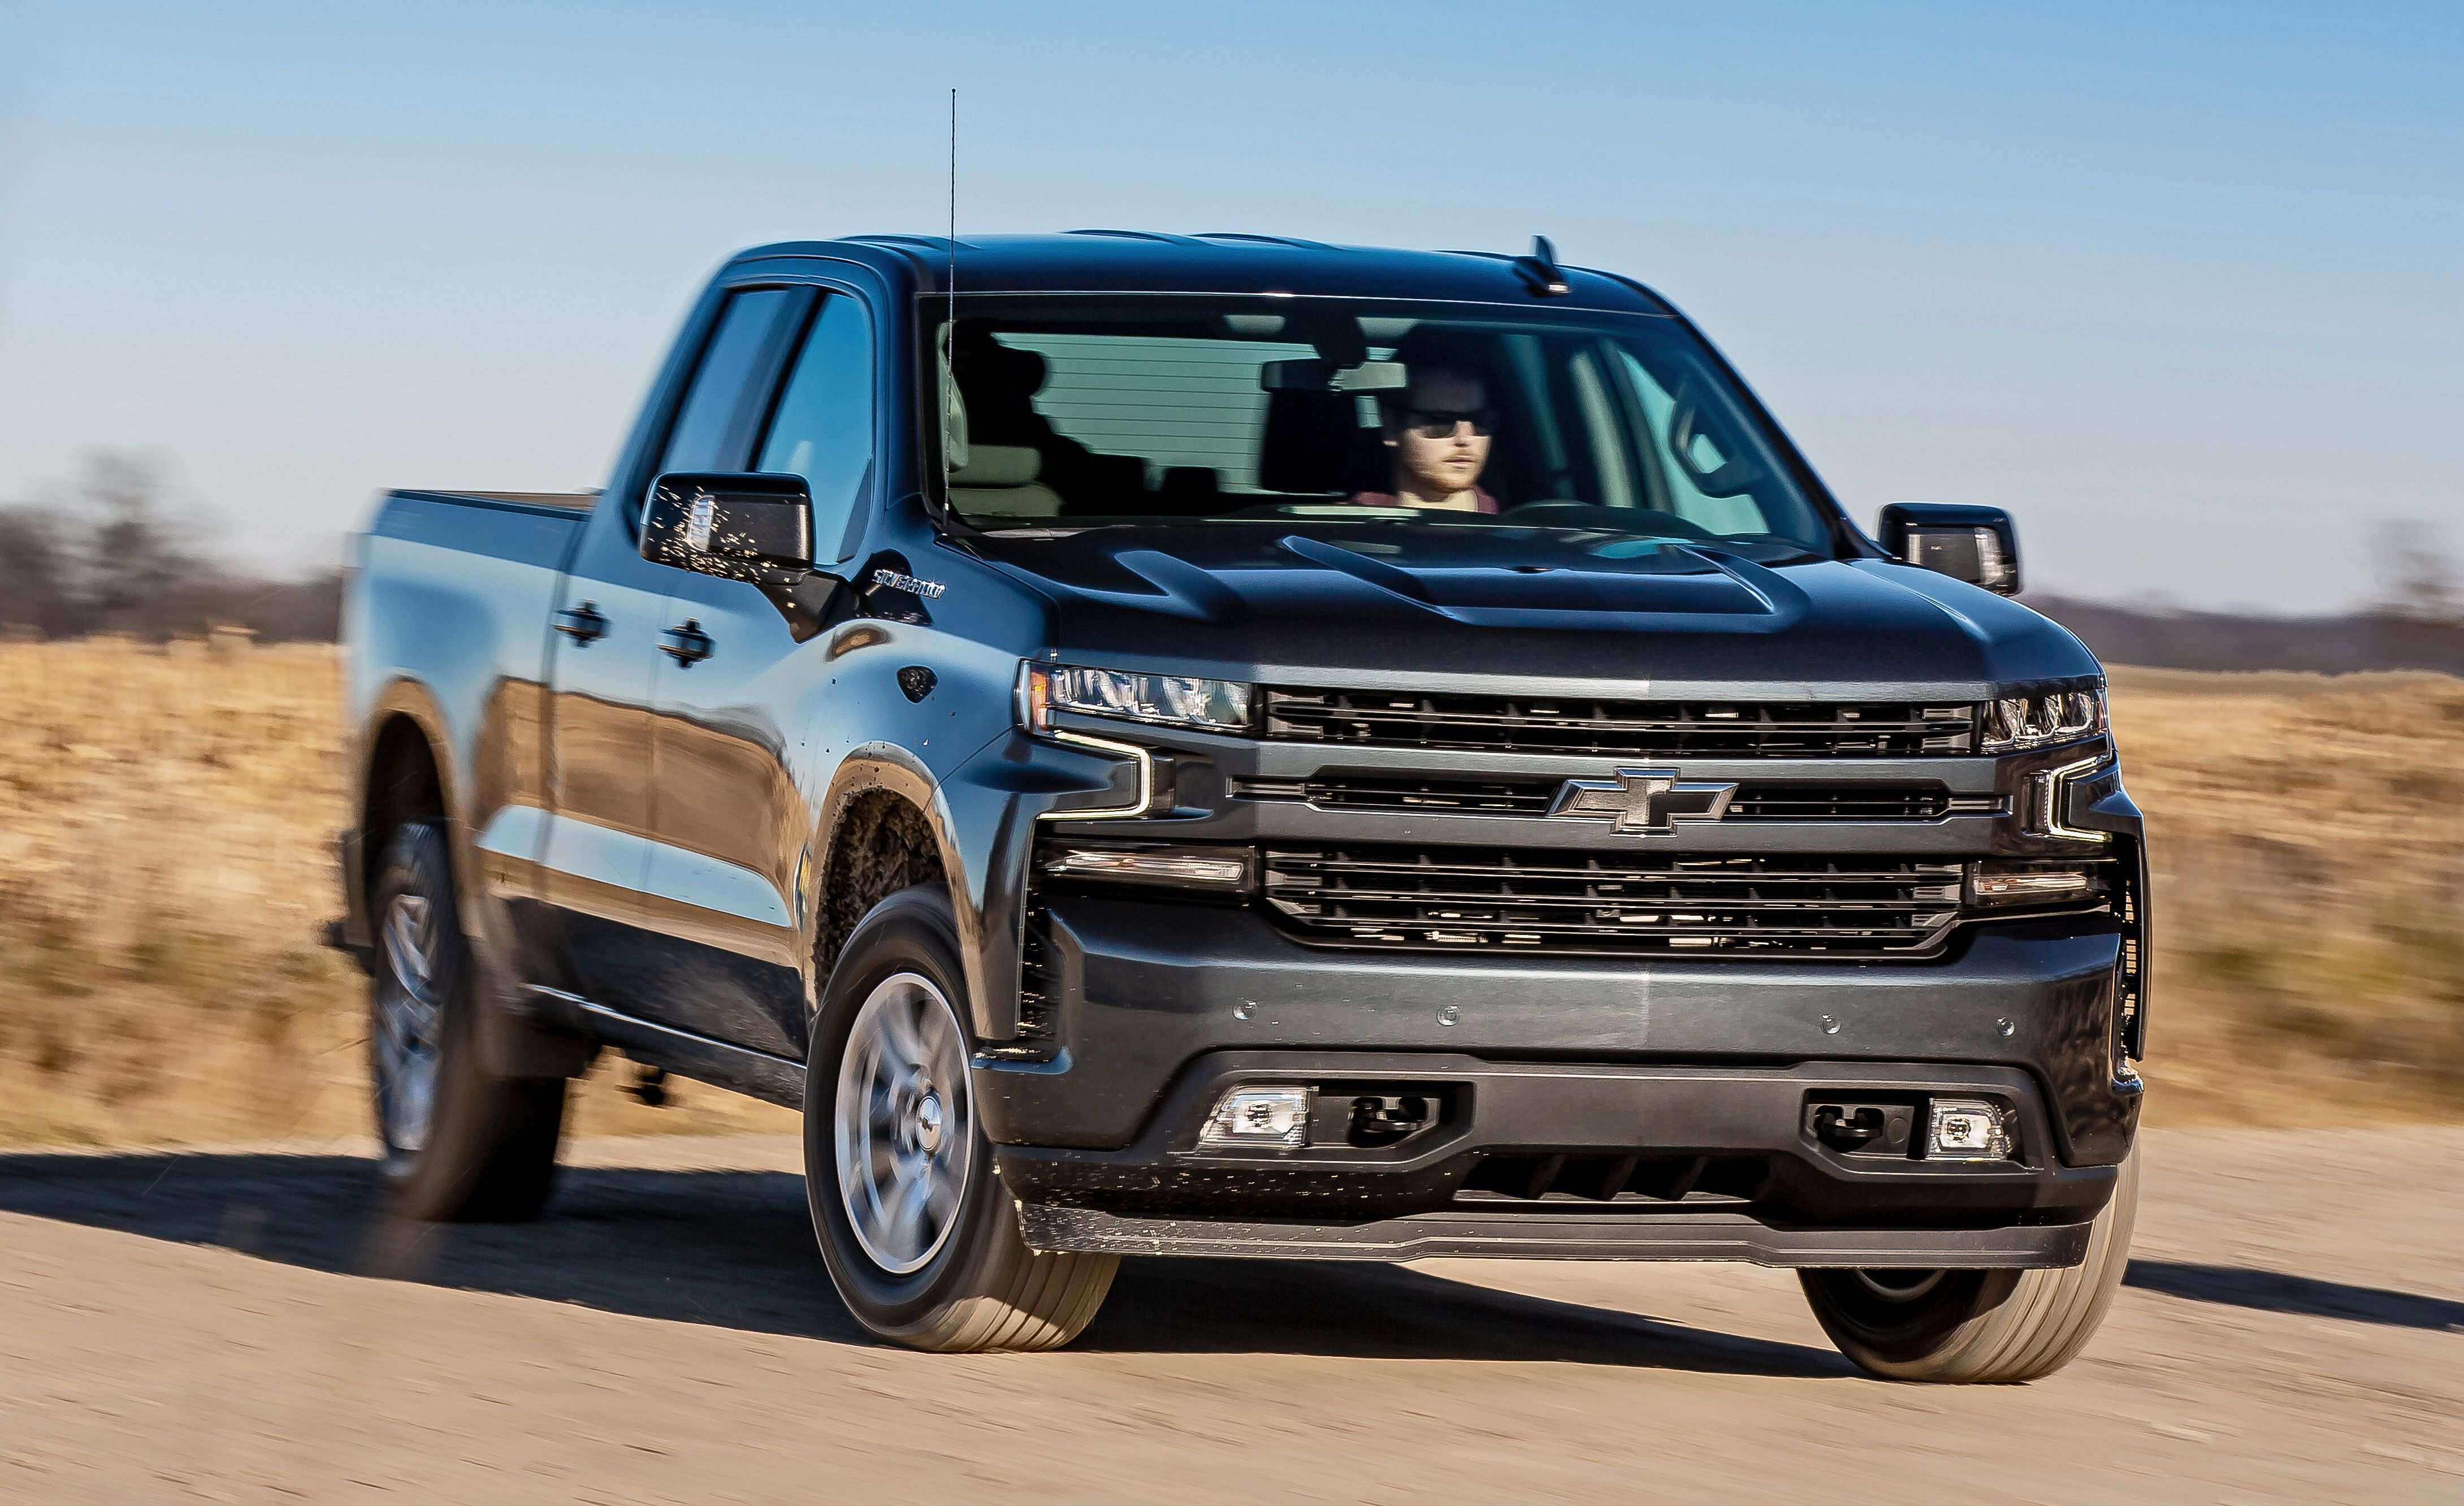 96 Best Review New 2019 Chevrolet Silverado Interior Specs And Review Configurations for New 2019 Chevrolet Silverado Interior Specs And Review